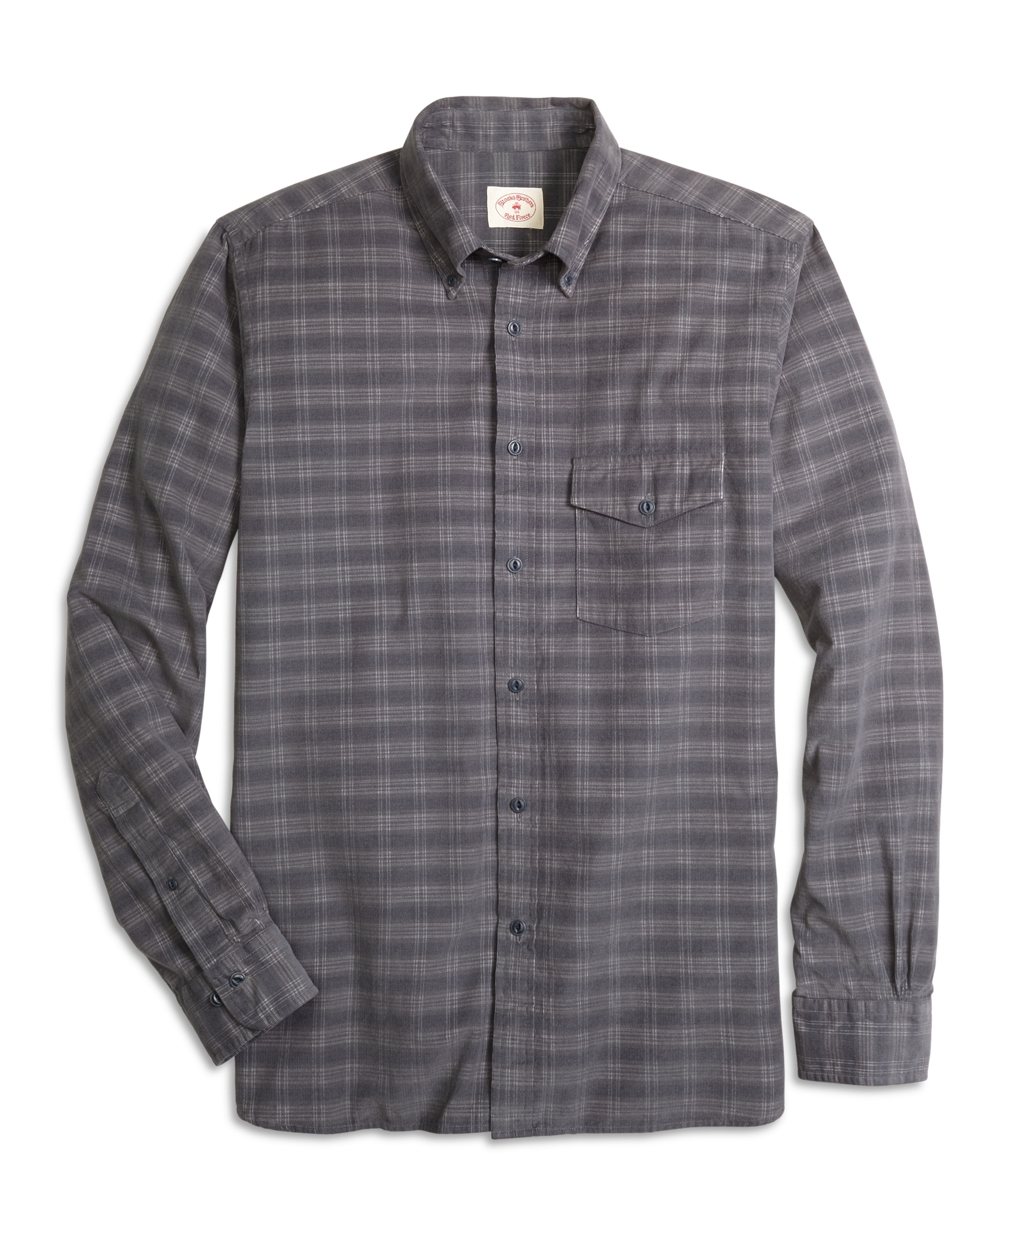 Brooks brothers plaid corduroy sport shirt in gray for men for Brooks brothers sports shirts